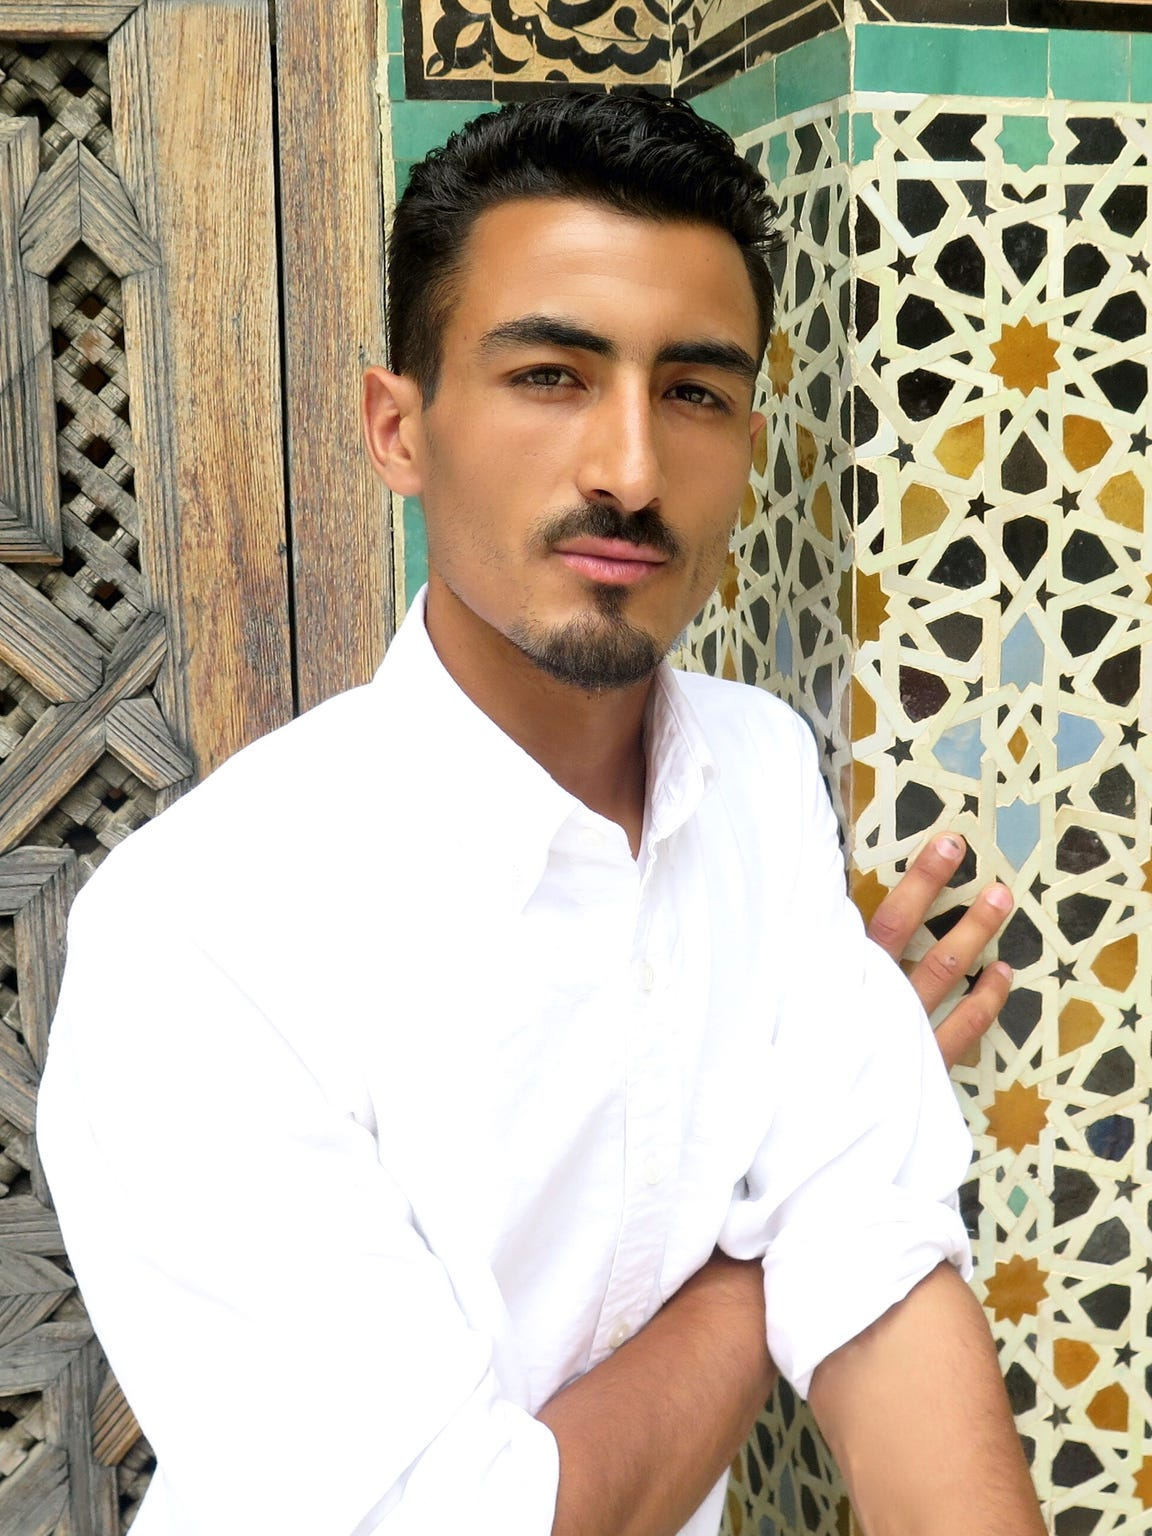 Taib Lotfi, co-founder of Soukie Modern, was born and raised in the Adar village in Morocco.